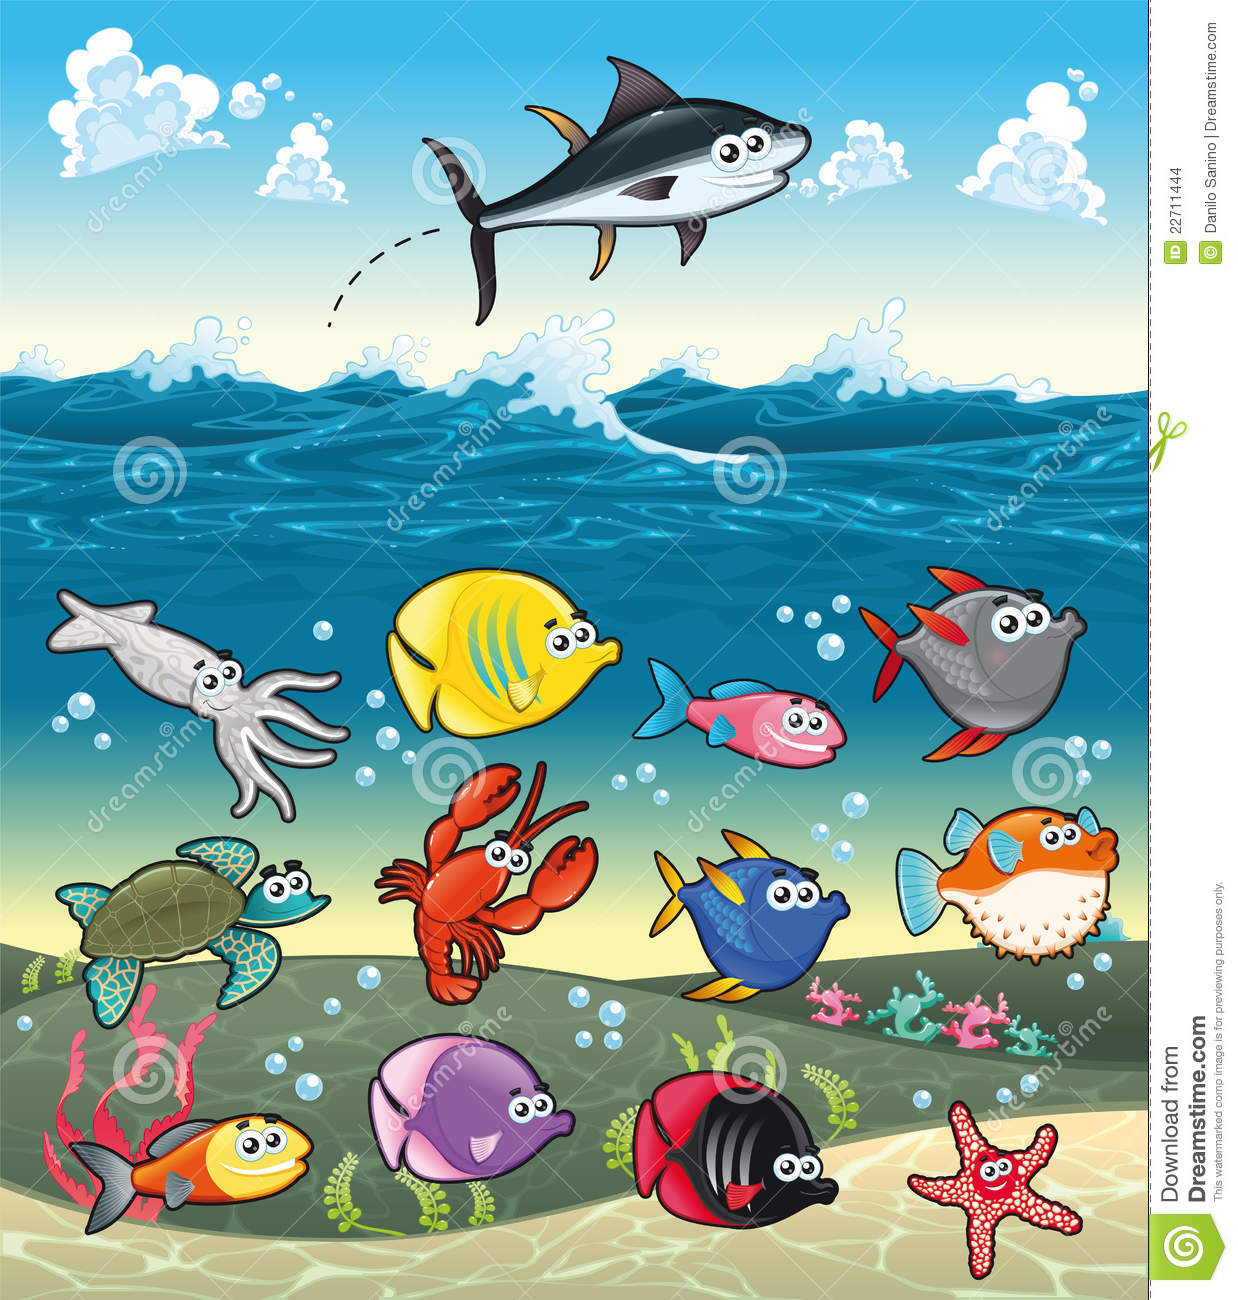 More Similar Stock Images Of   Family Of Funny Fish Under The Sea